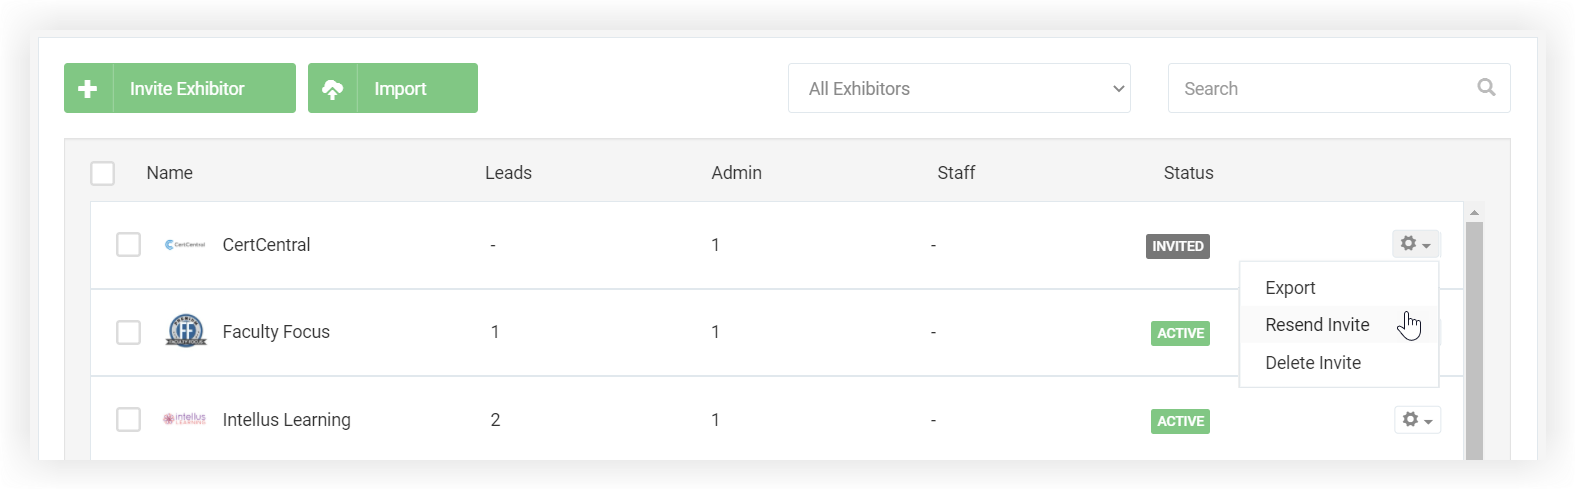 Screenshot of the Exhibitors page after some Exhibitors have been invited. The settings icon for one of them has been clicked.